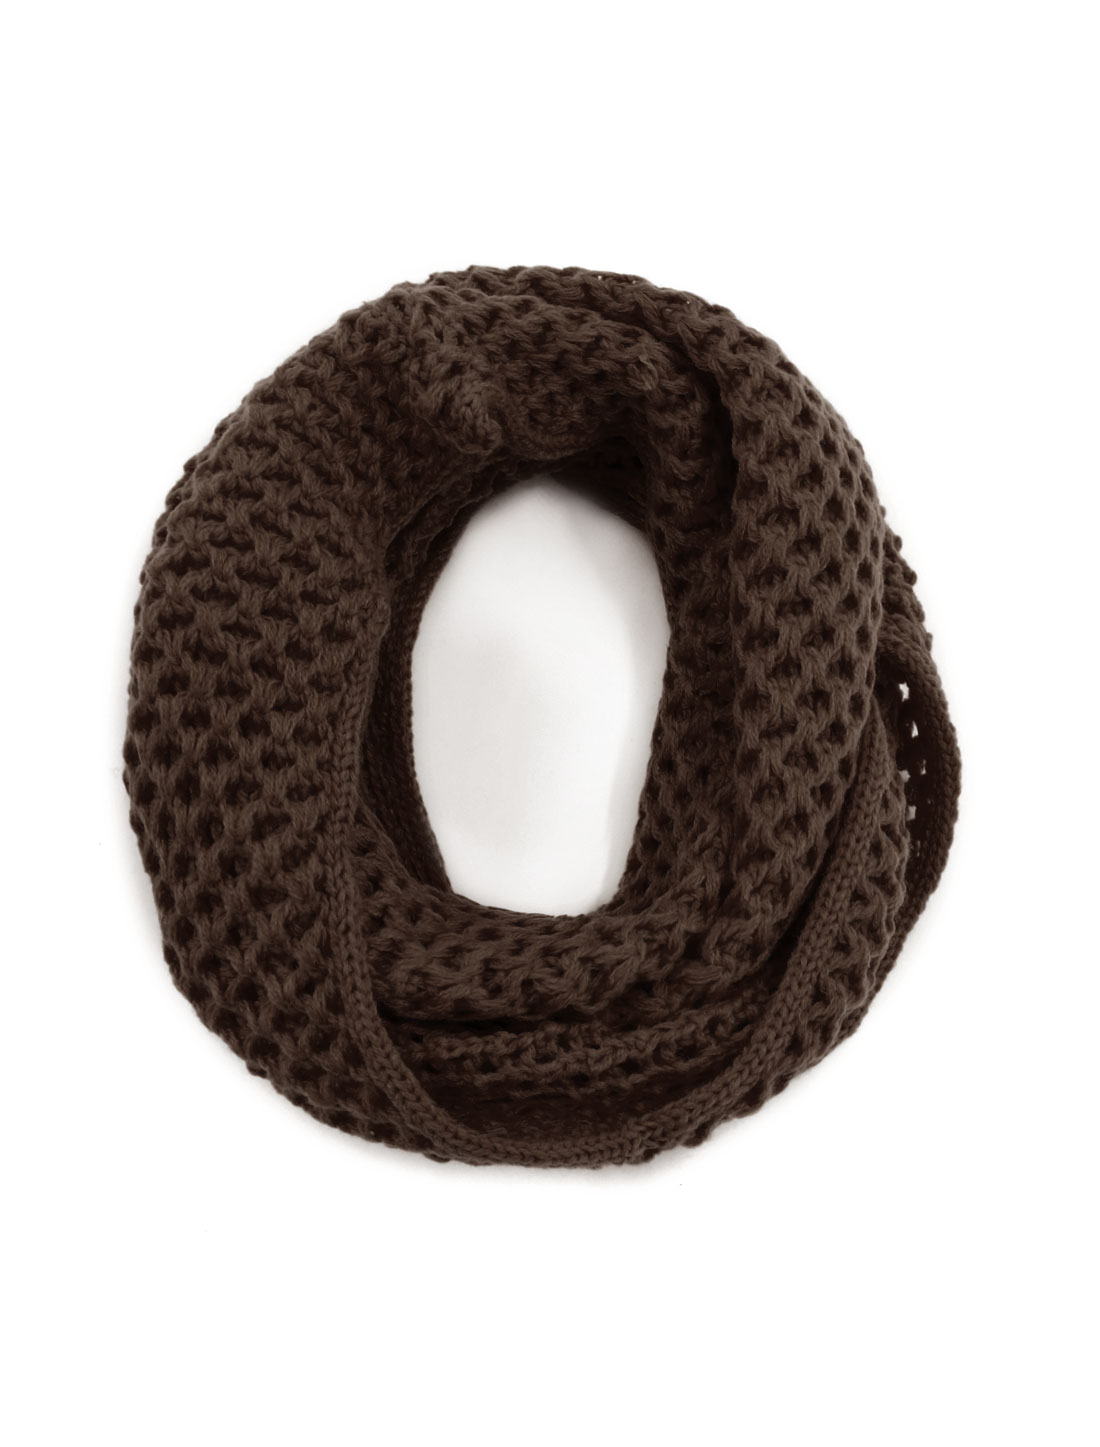 Unisex Winter Wearing Hollow Out Knitted Circle Scarf Brown